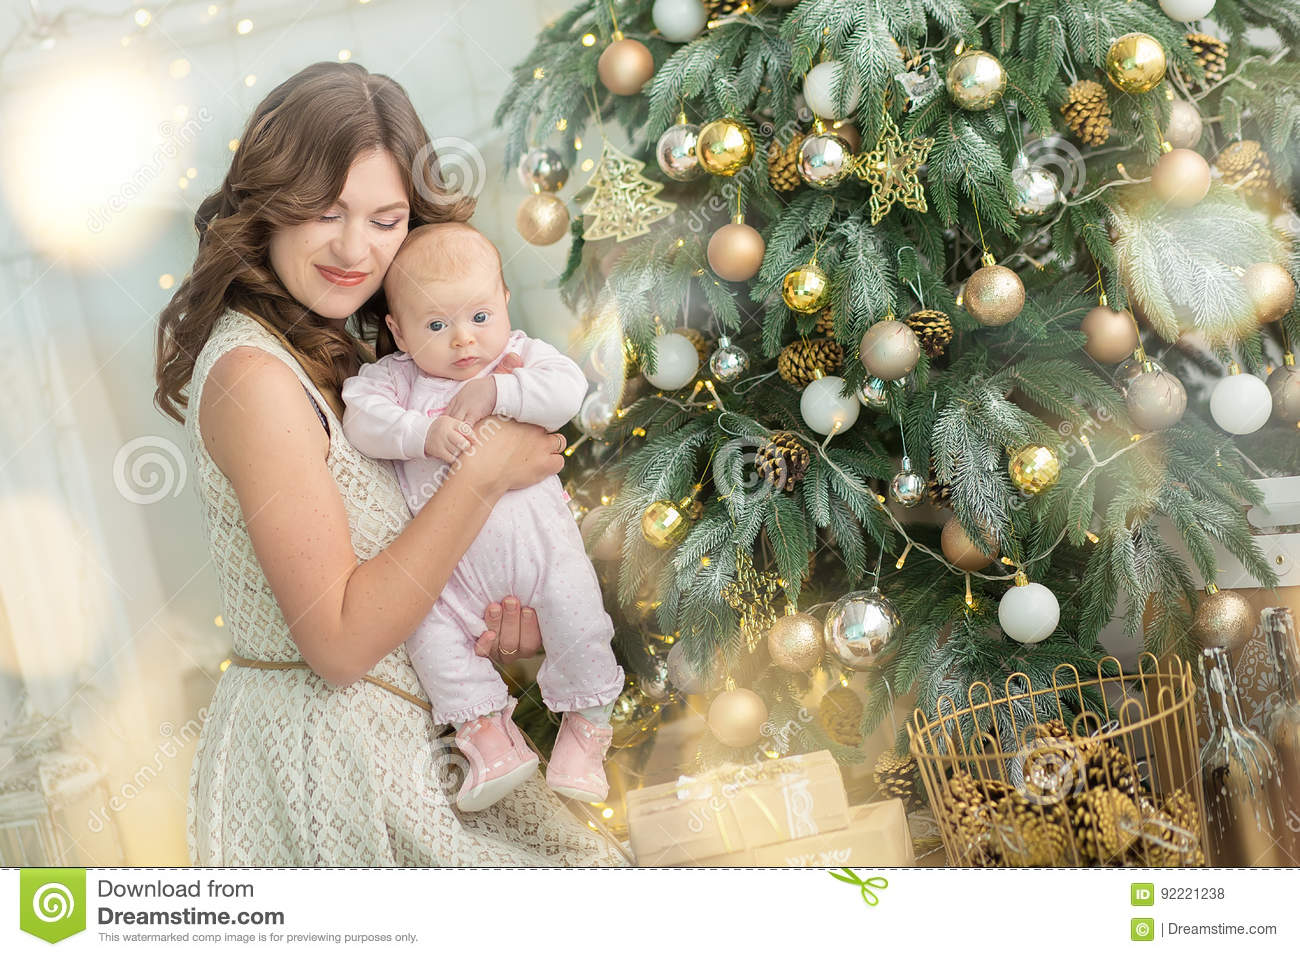 Mother and baby xmas gifts for women